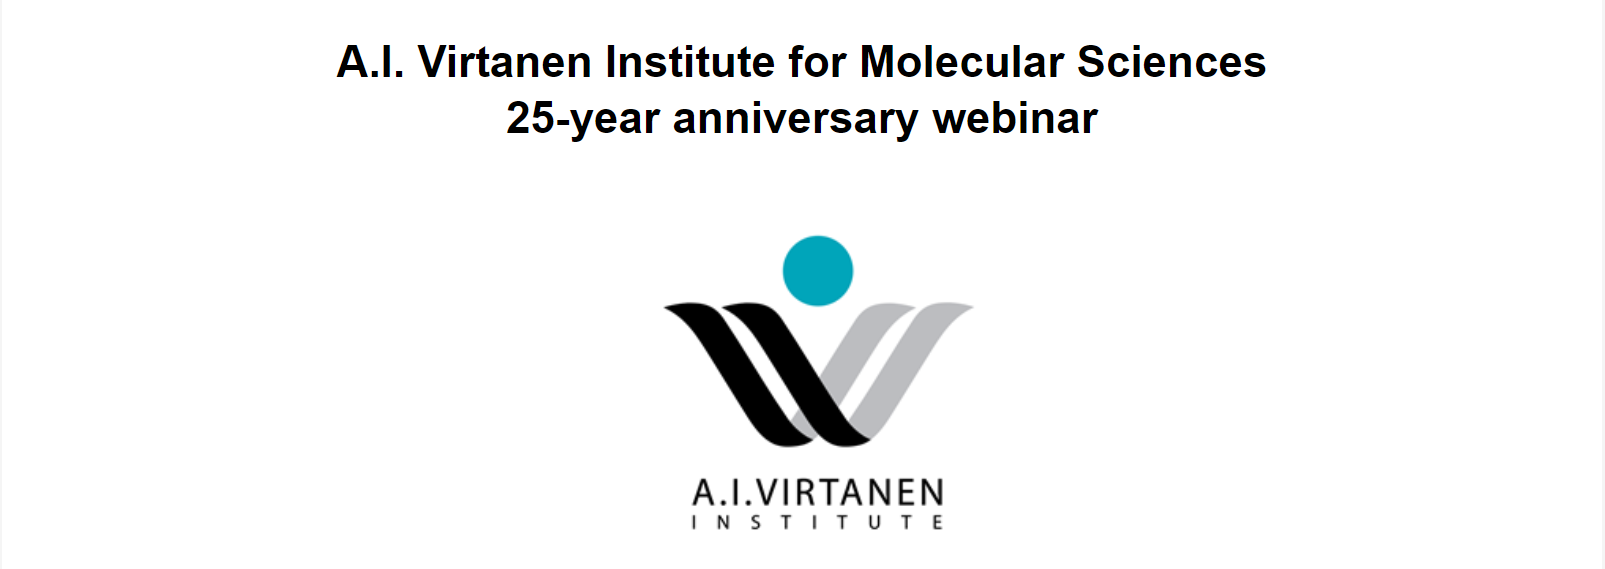 A.I. Virtanen Institute 25-year Anniversary Webinar